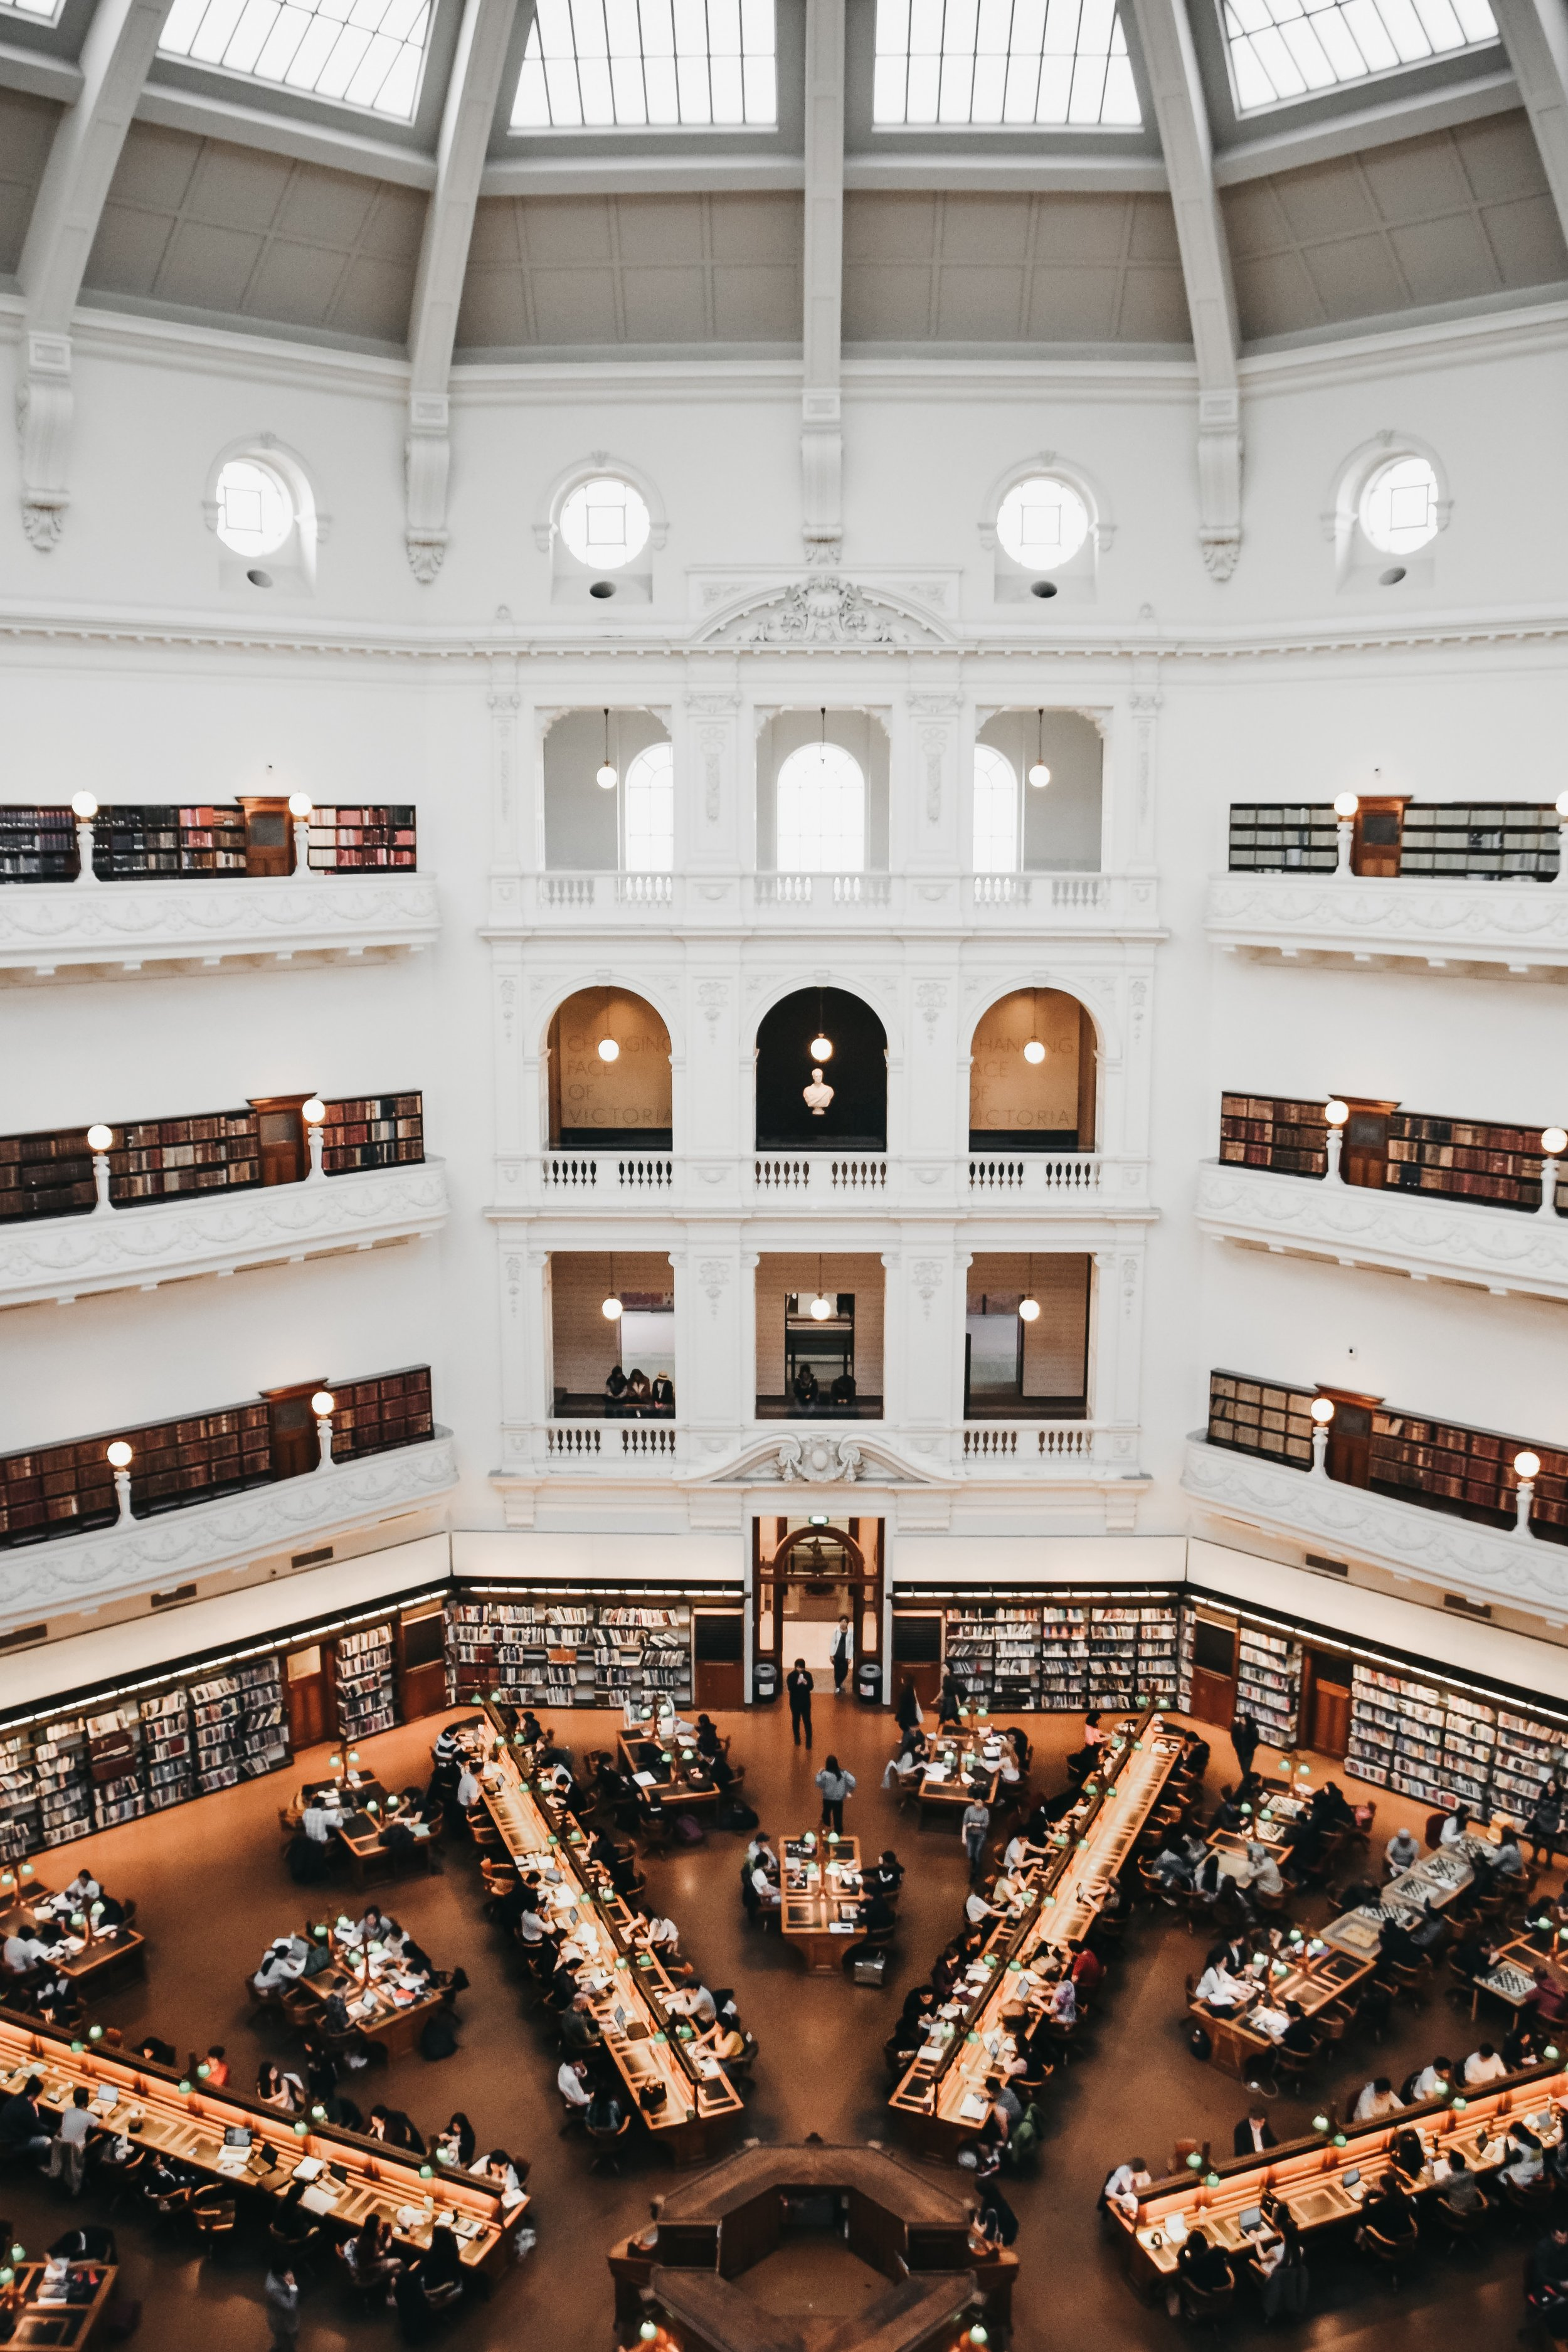 Reading room inside the State Library Victoria. Photo by Agathe Marty